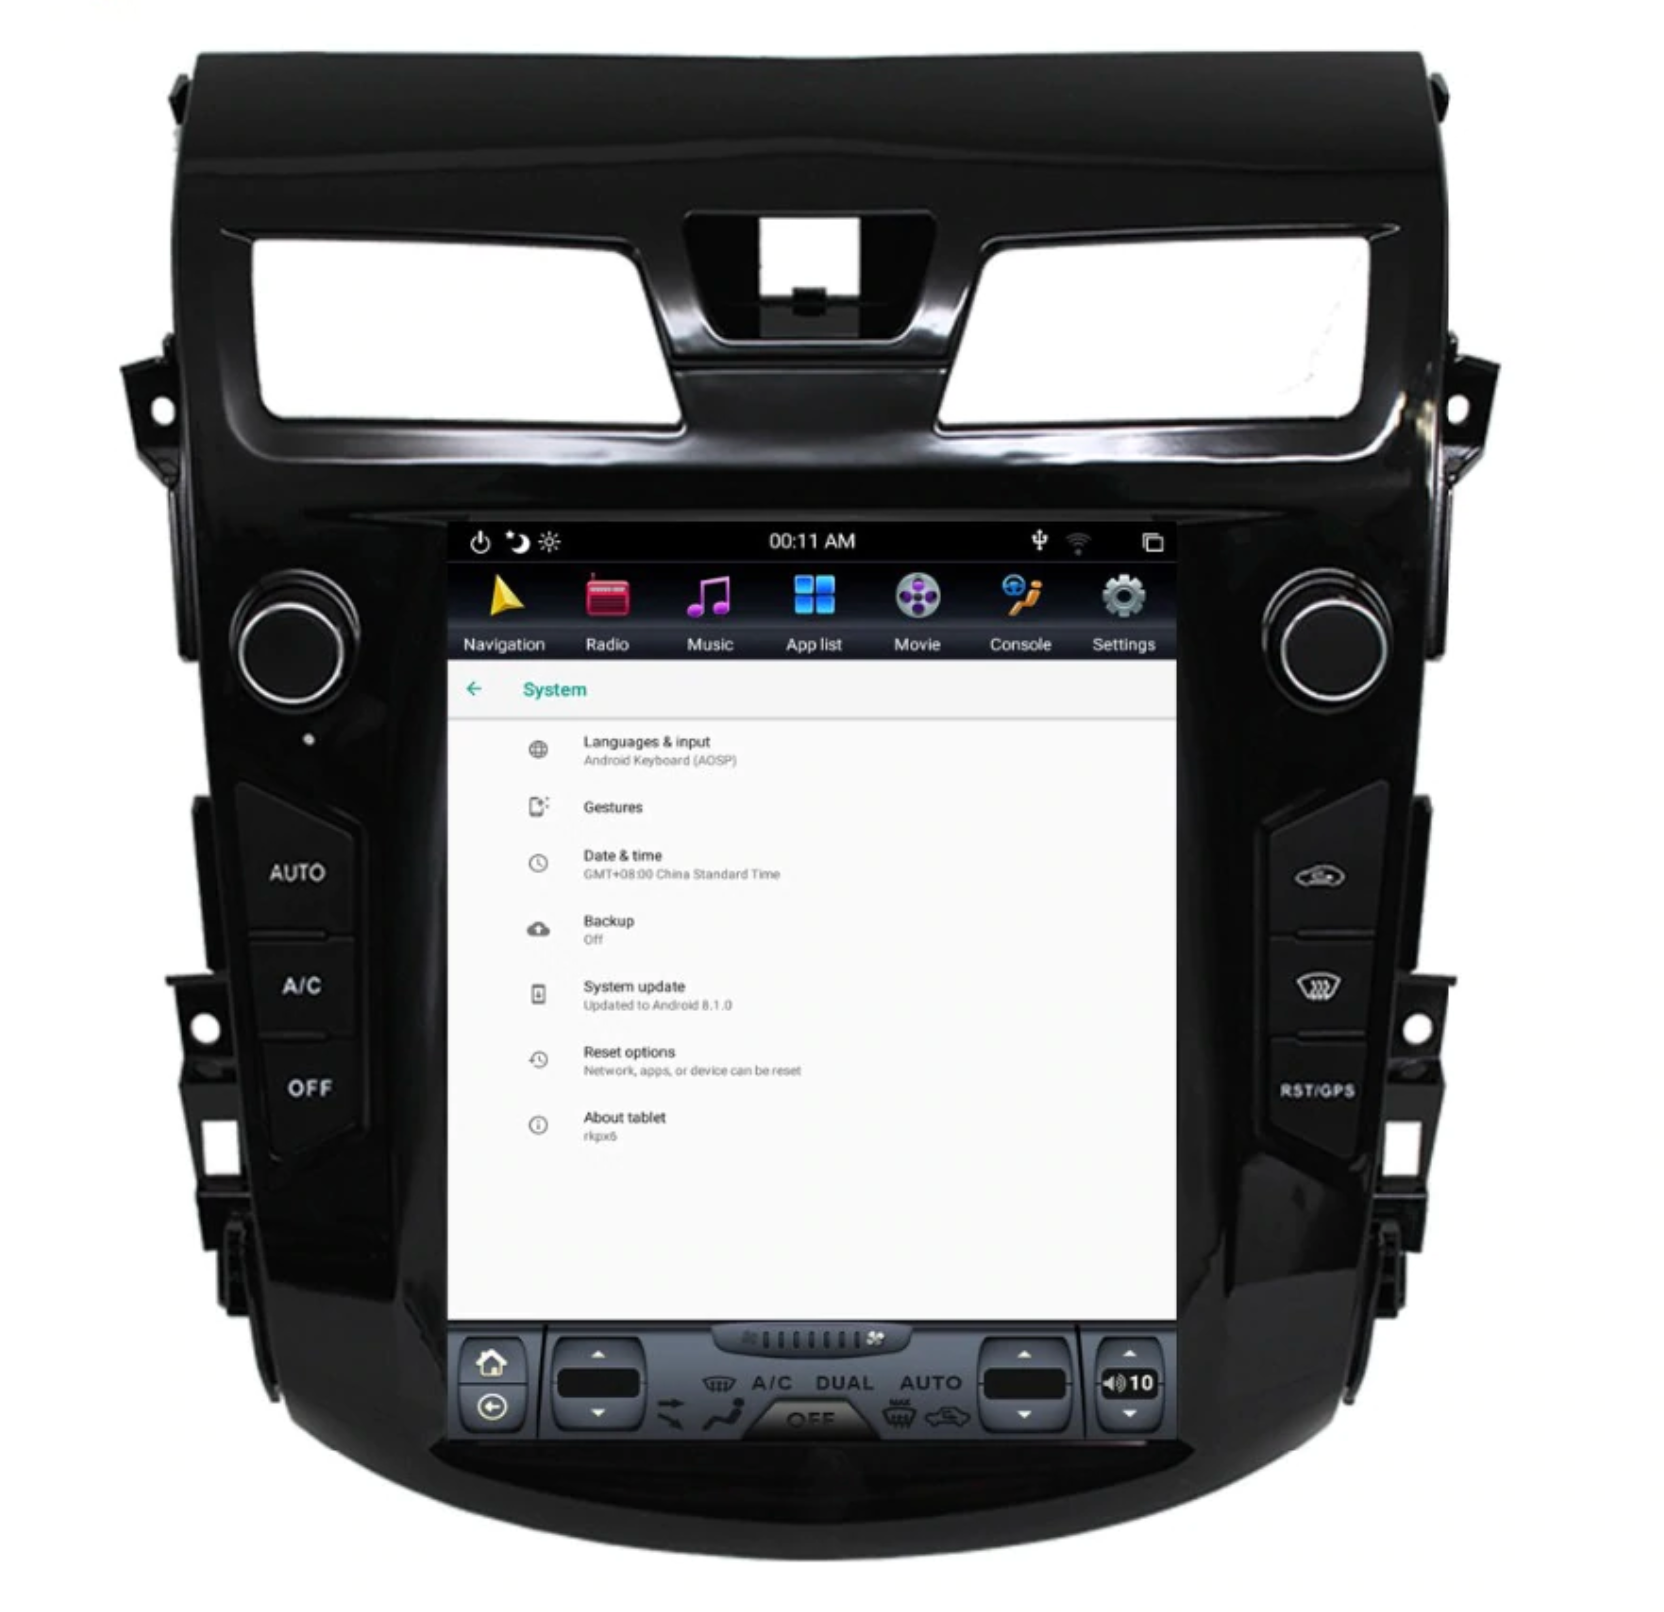 "Nissan Altima 2013 - 2015 10.4"" Vertical Screen Android Radio Tesla Style"